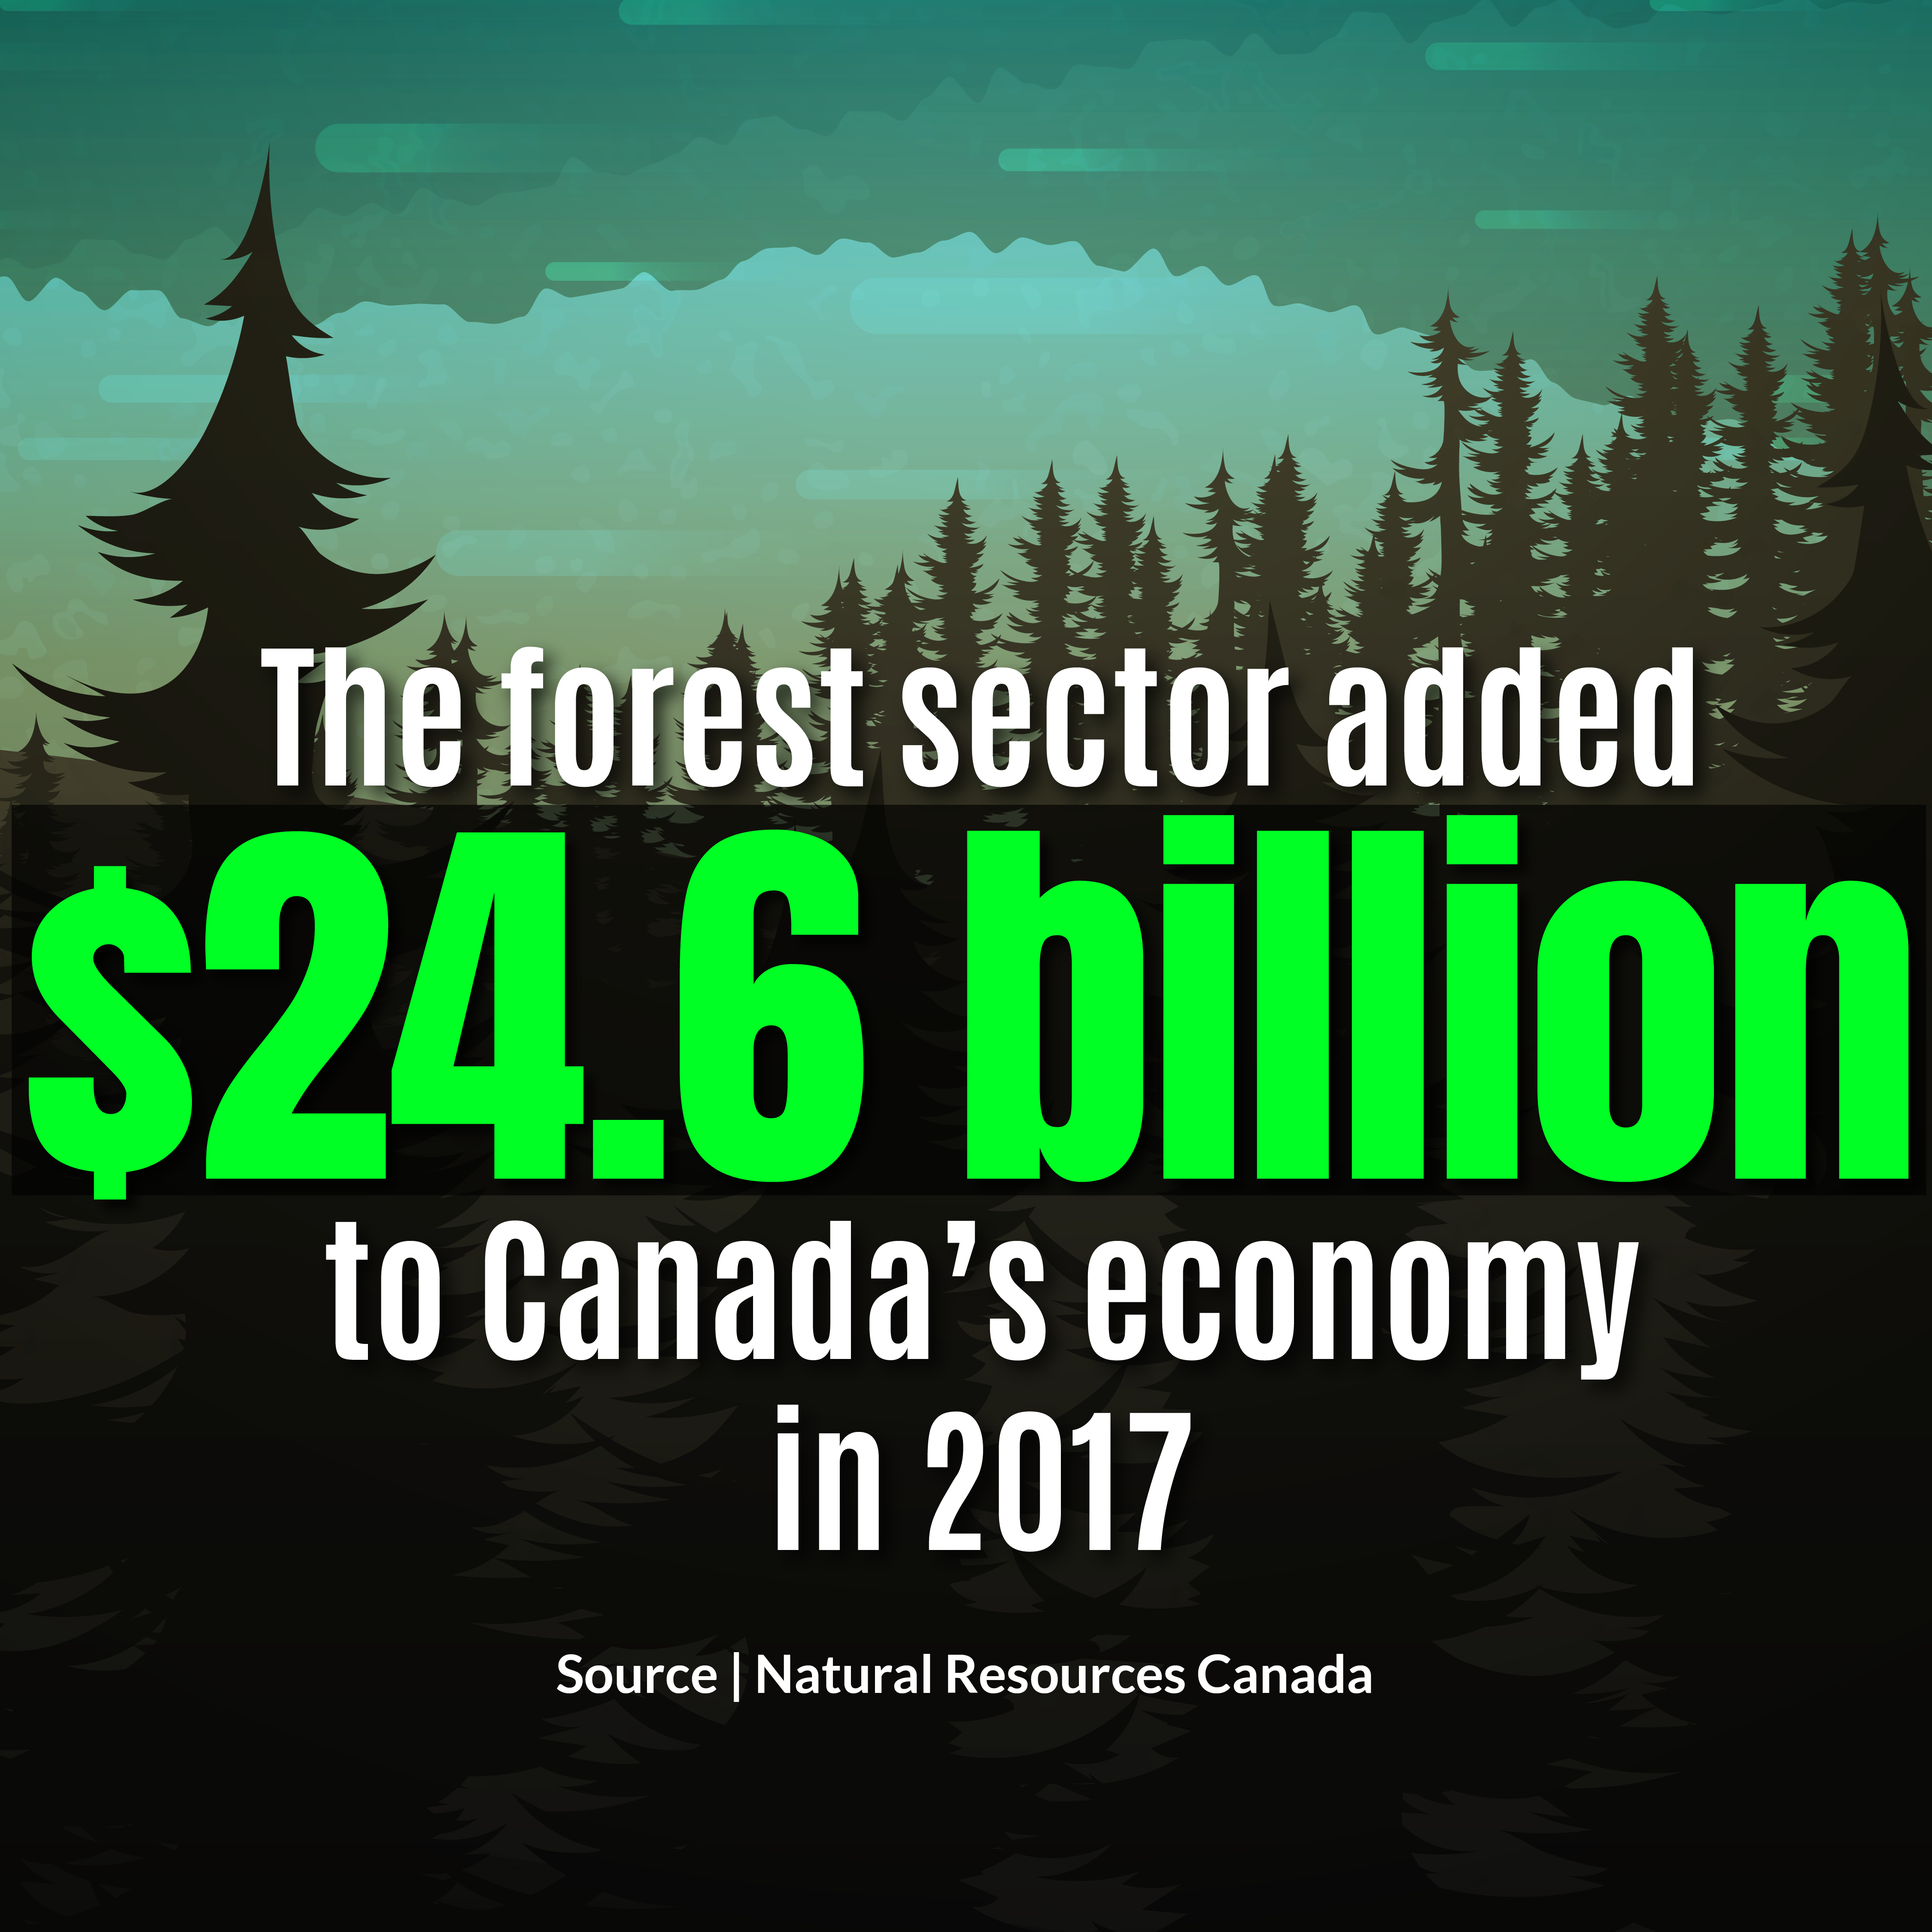 $24.6 billion added to canada's economy from forestry sector in 2017